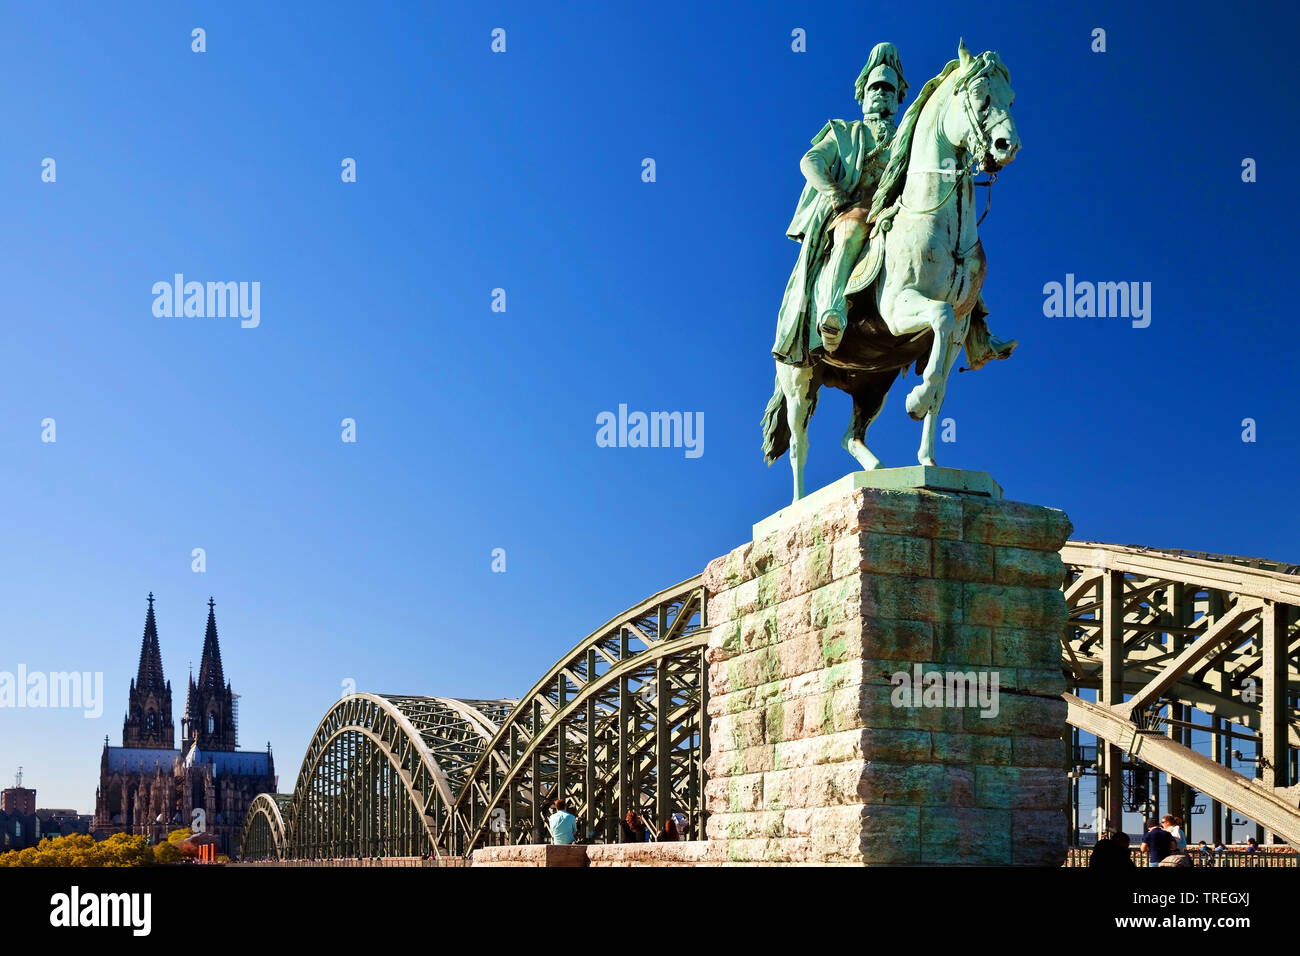 Equestrian Statue of Wilhelm I. with Cologne Cathedral and Hohenzollern Bridge, Germany, North Rhine-Westphalia, Cologne Stock Photo